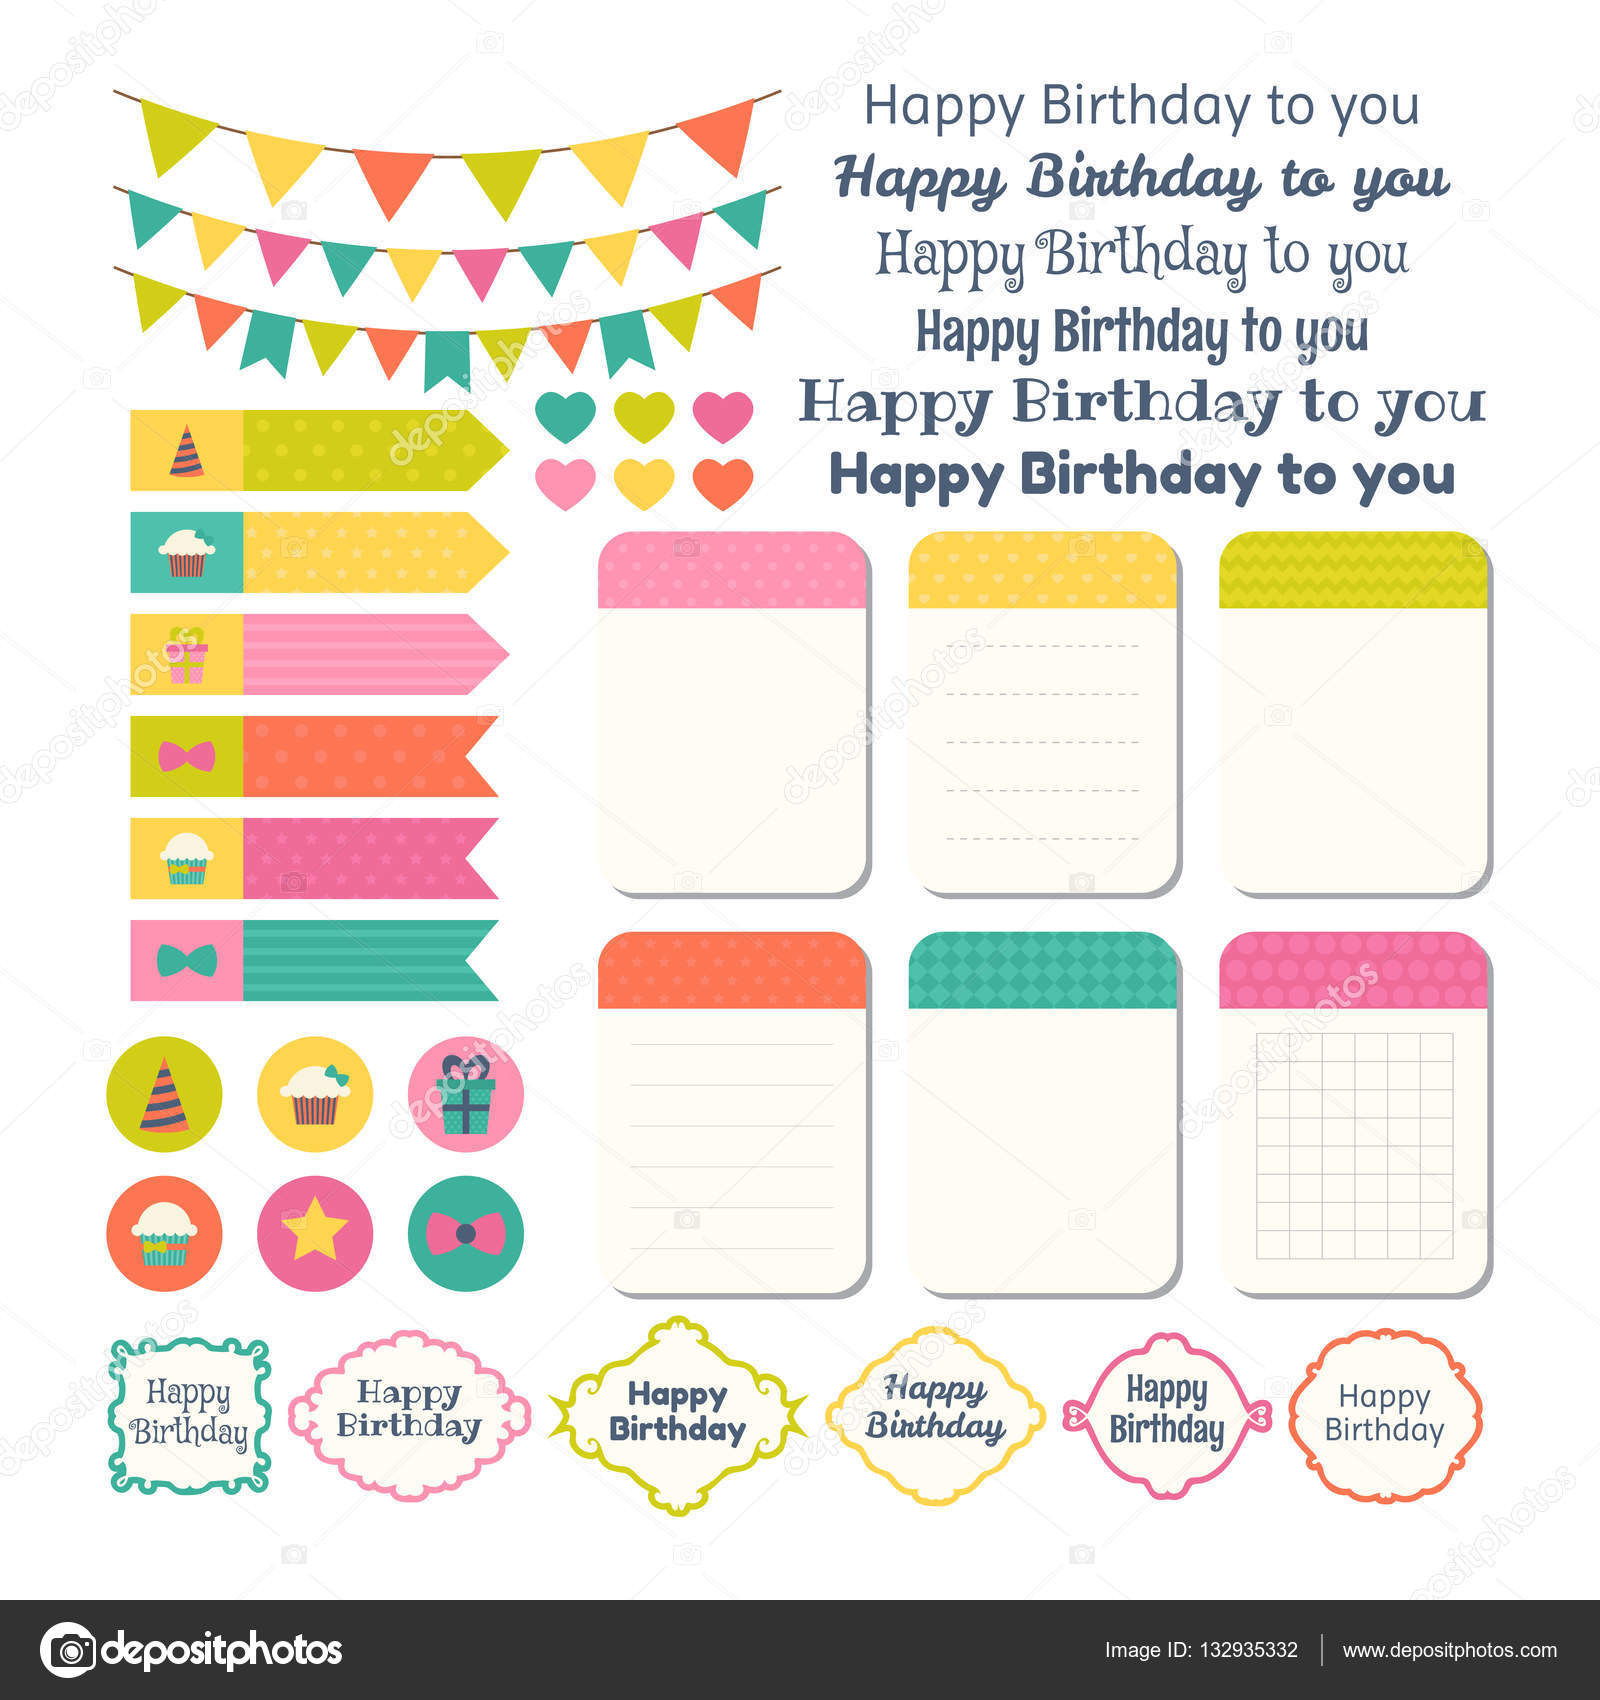 happy birthday sticker template ; depositphotos_132935332-stock-illustration-set-of-birthday-party-design